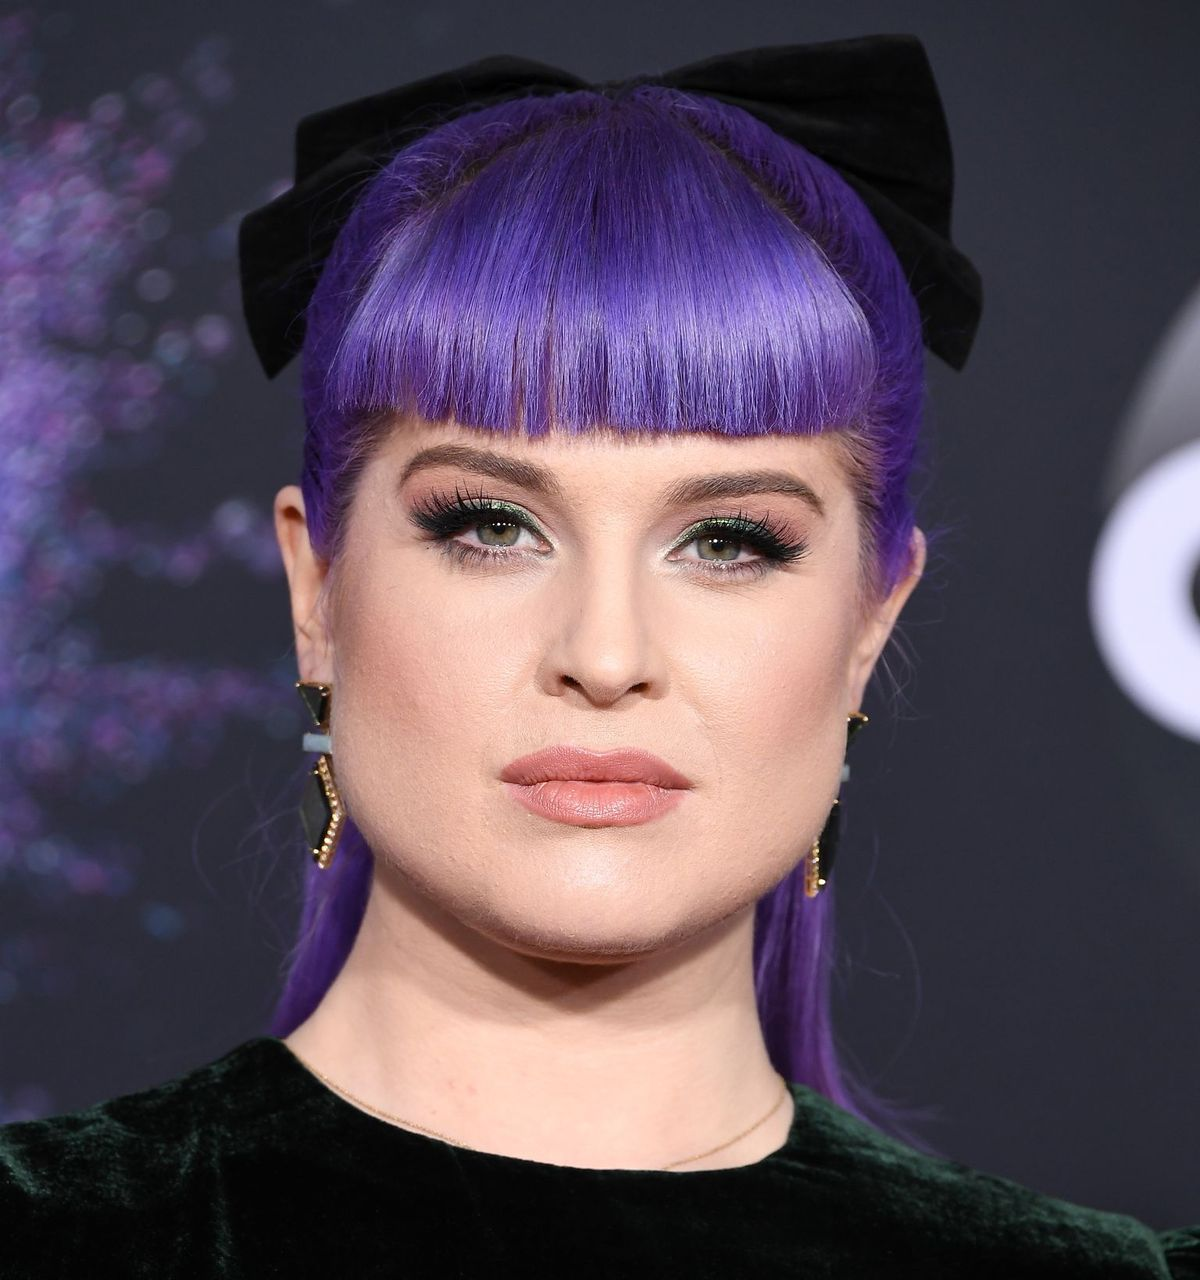 Kelly Osbourne at the 2019 American Music Awards  on November 24, 2019 in LA | Getty Images